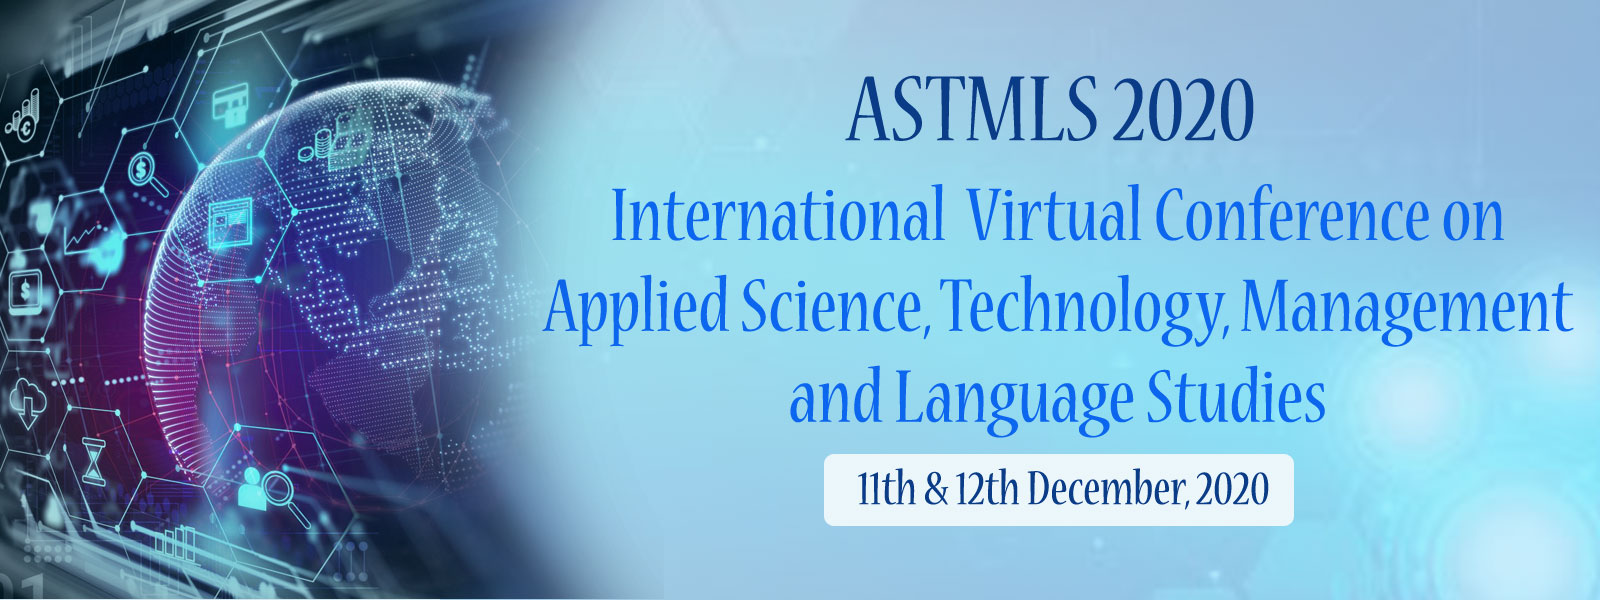 ASTMLS 2020 - International Conference